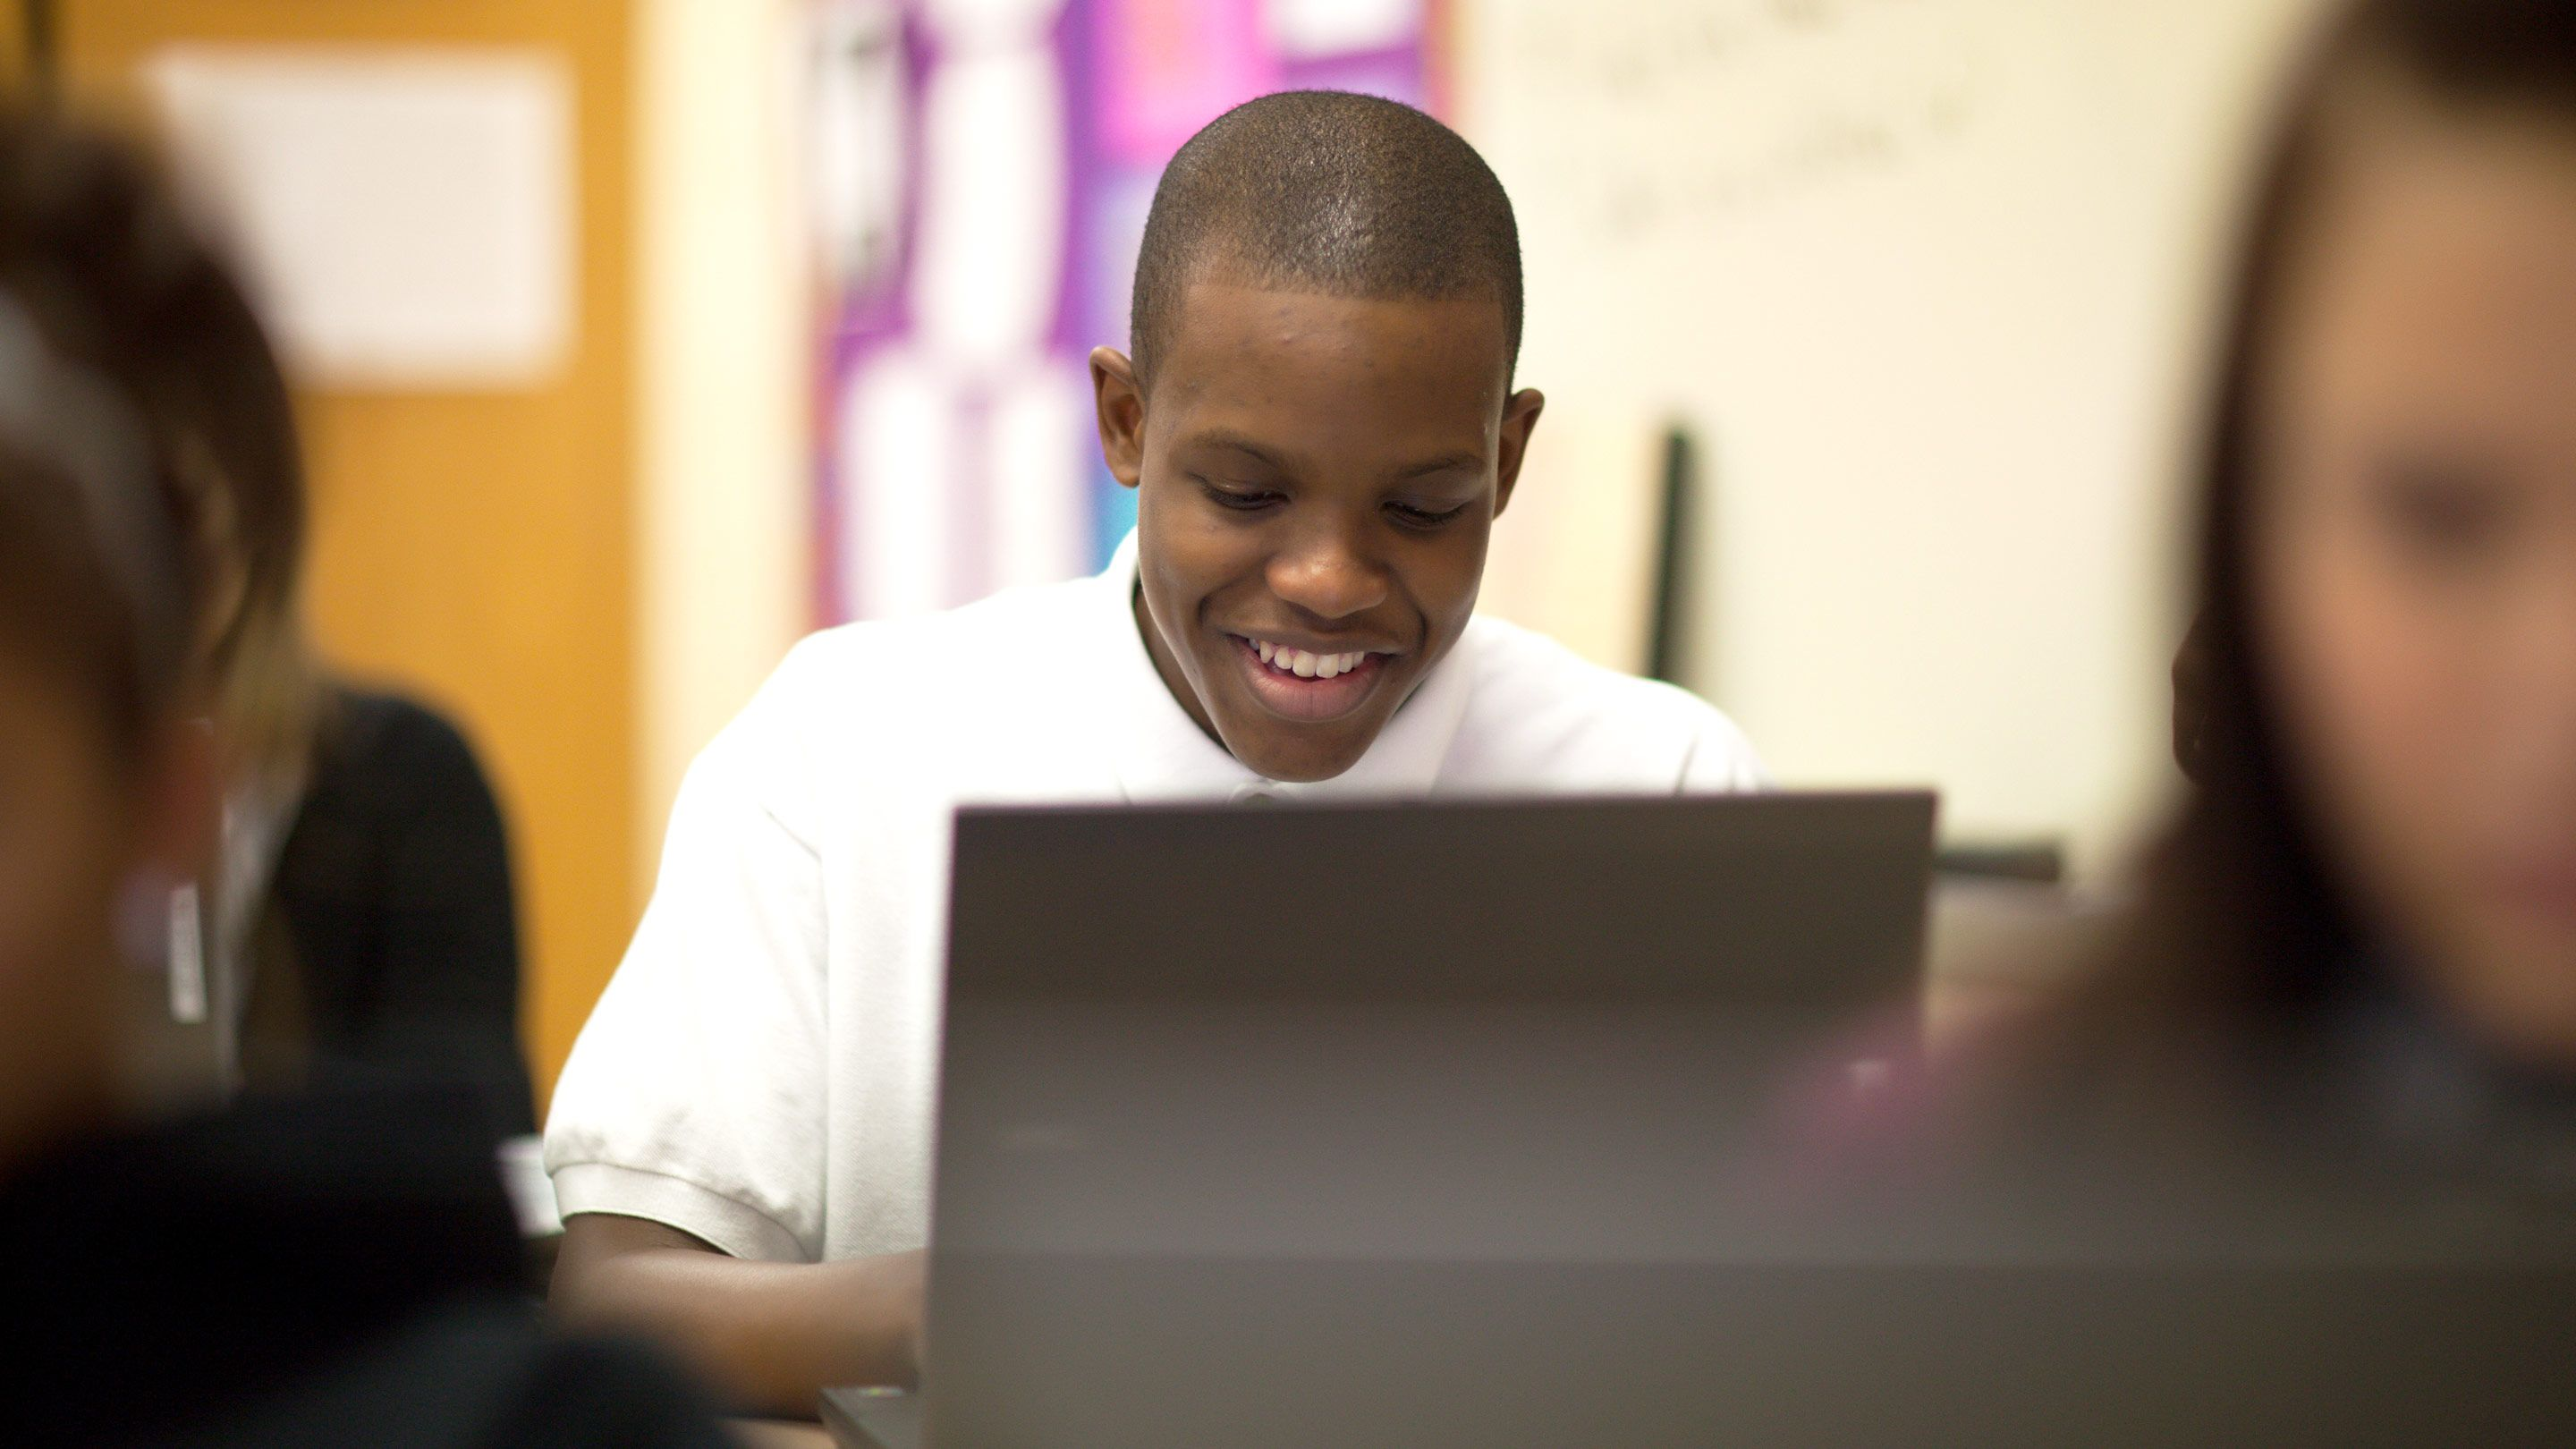 A high school student smiles confidently as he uses his computer.